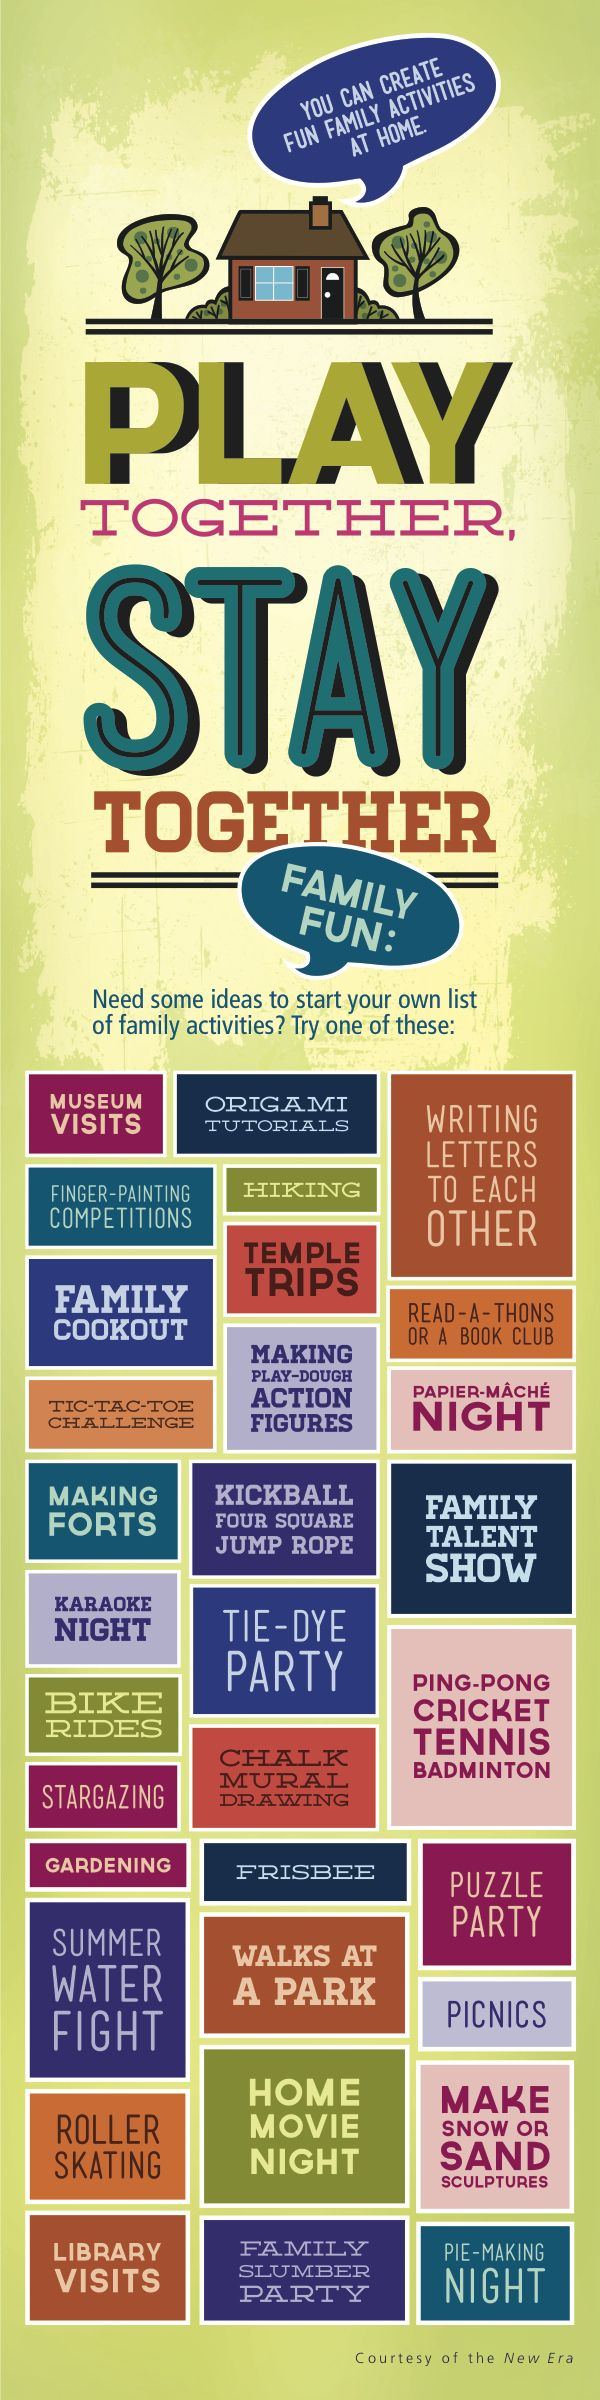 Looking For Fun Creative Family Activities Check Out These Ideas From The New Era